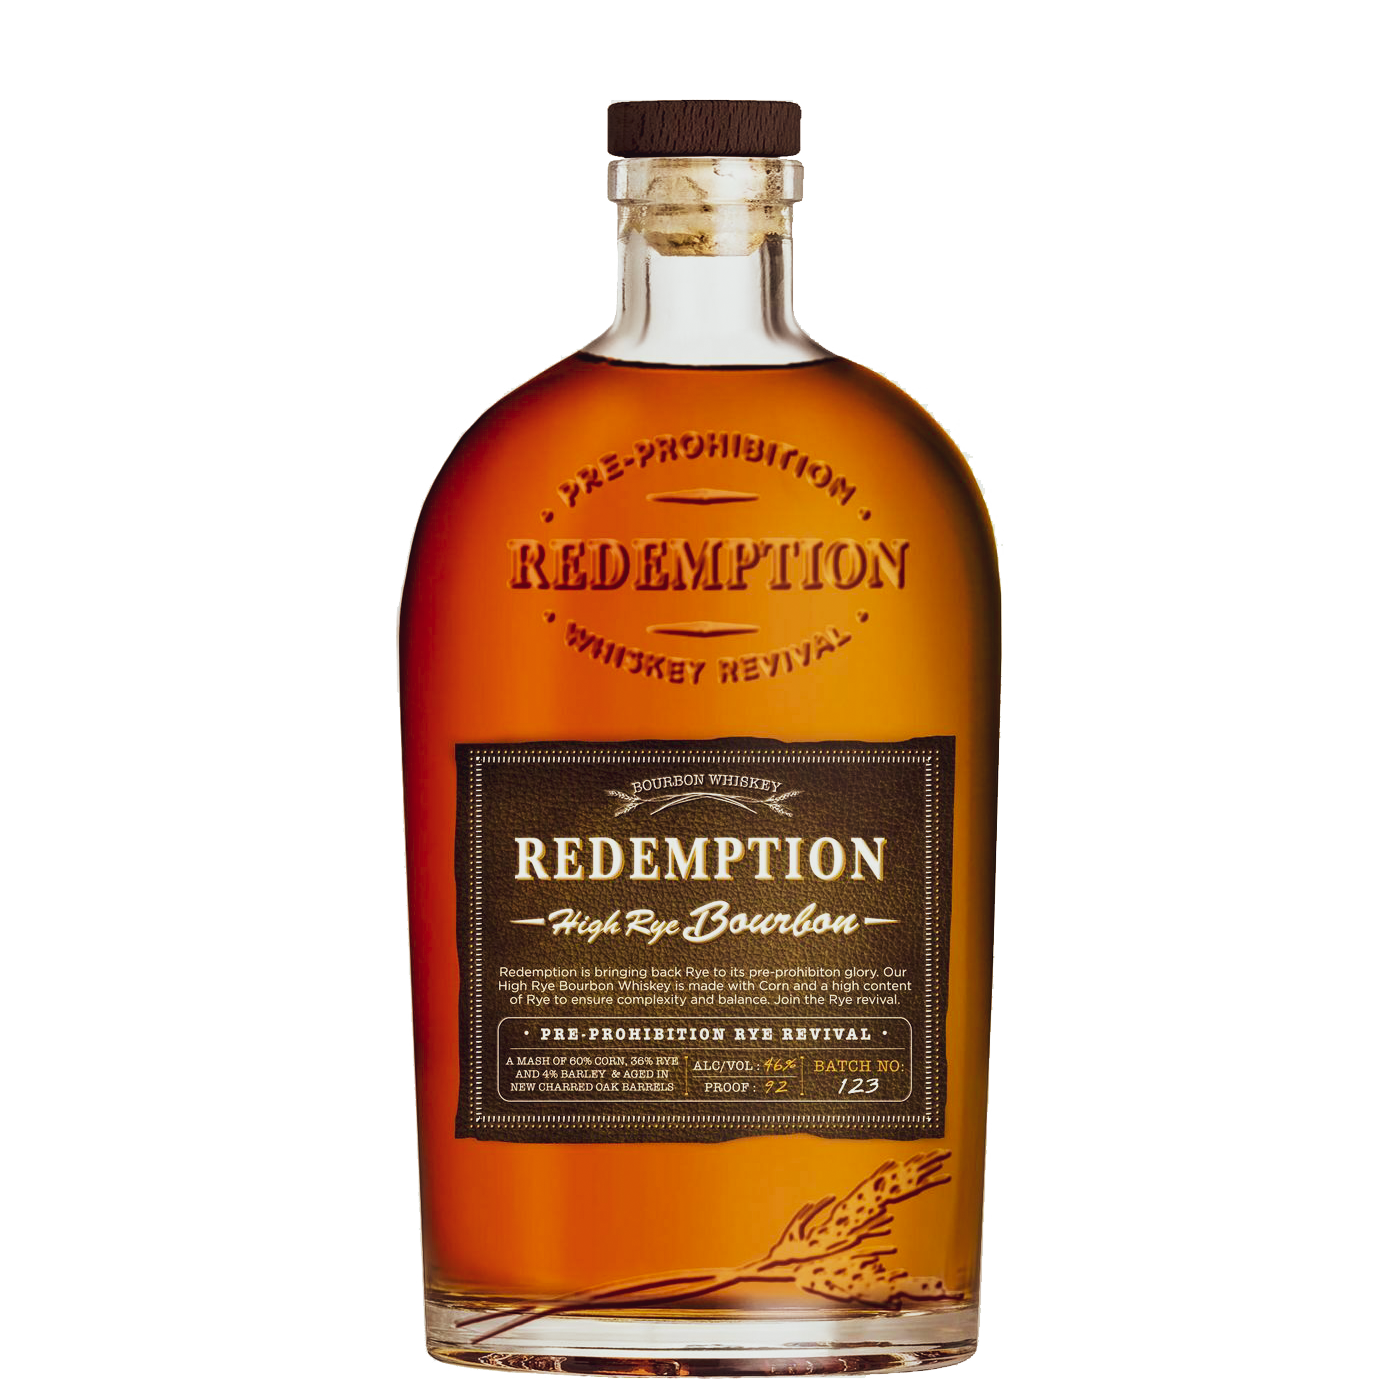 Redemption High Rye Straight Bourbon Whiskey